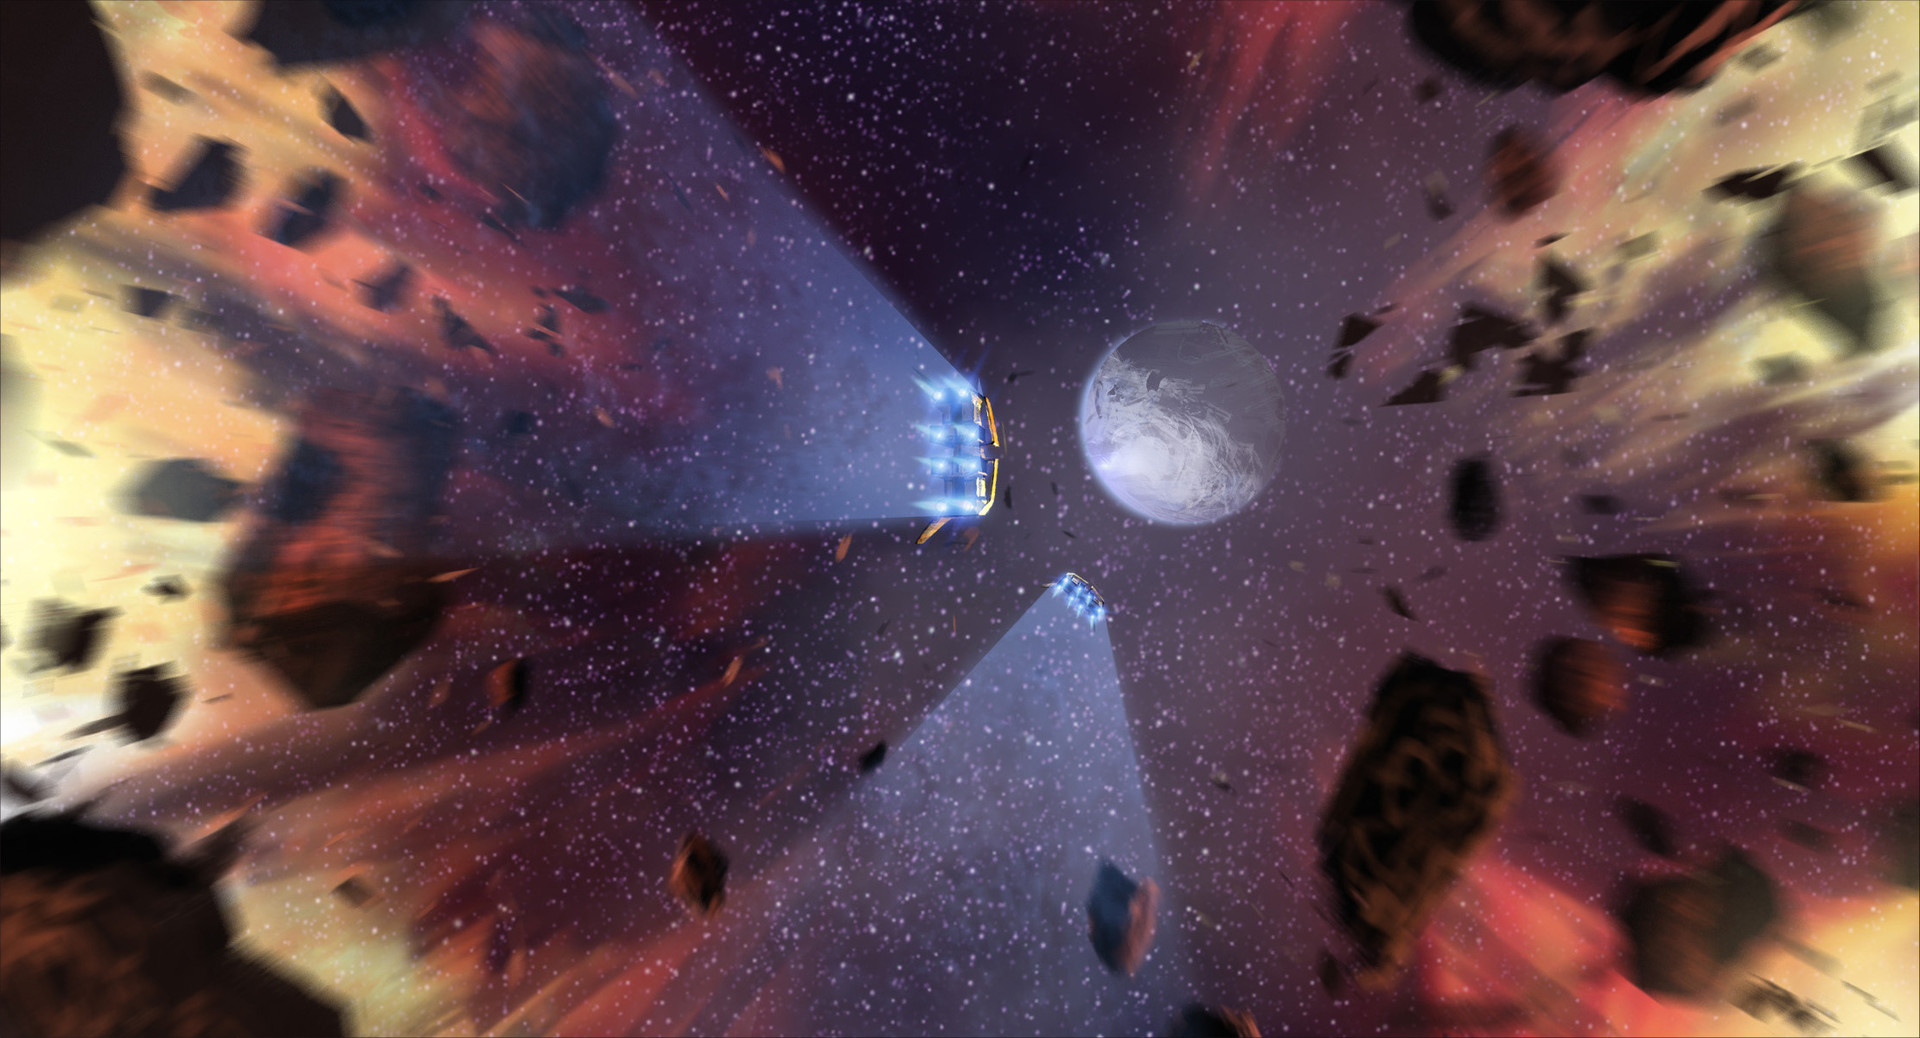 The ships punch through the explosion into a clear field of stars toward—